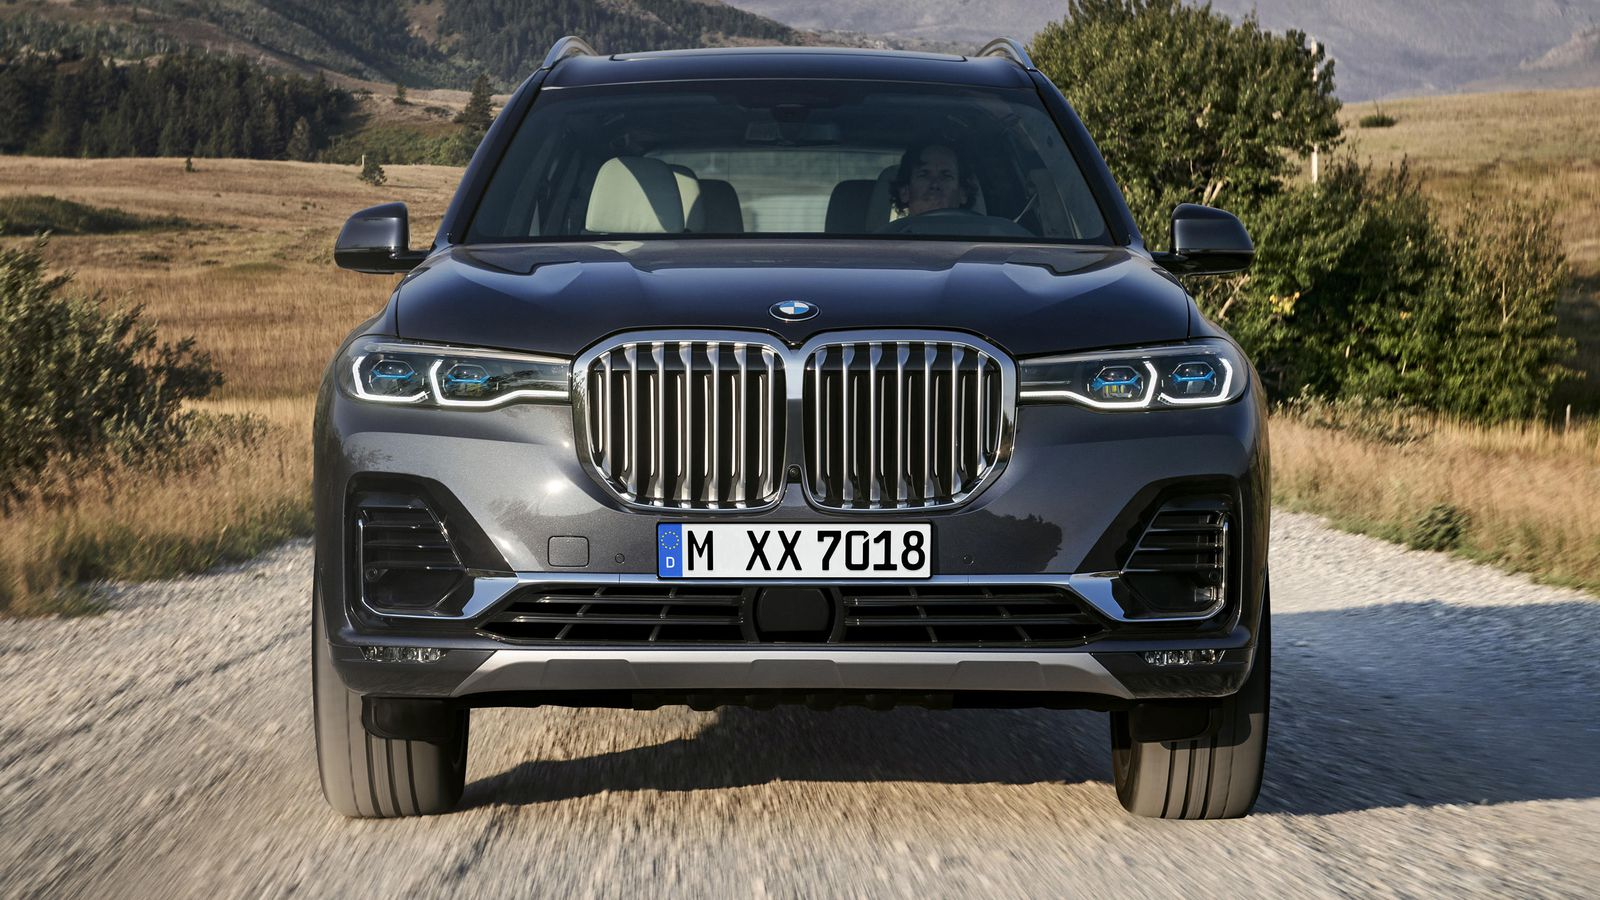 78 The Best 2020 BMW X7 Suv Exterior